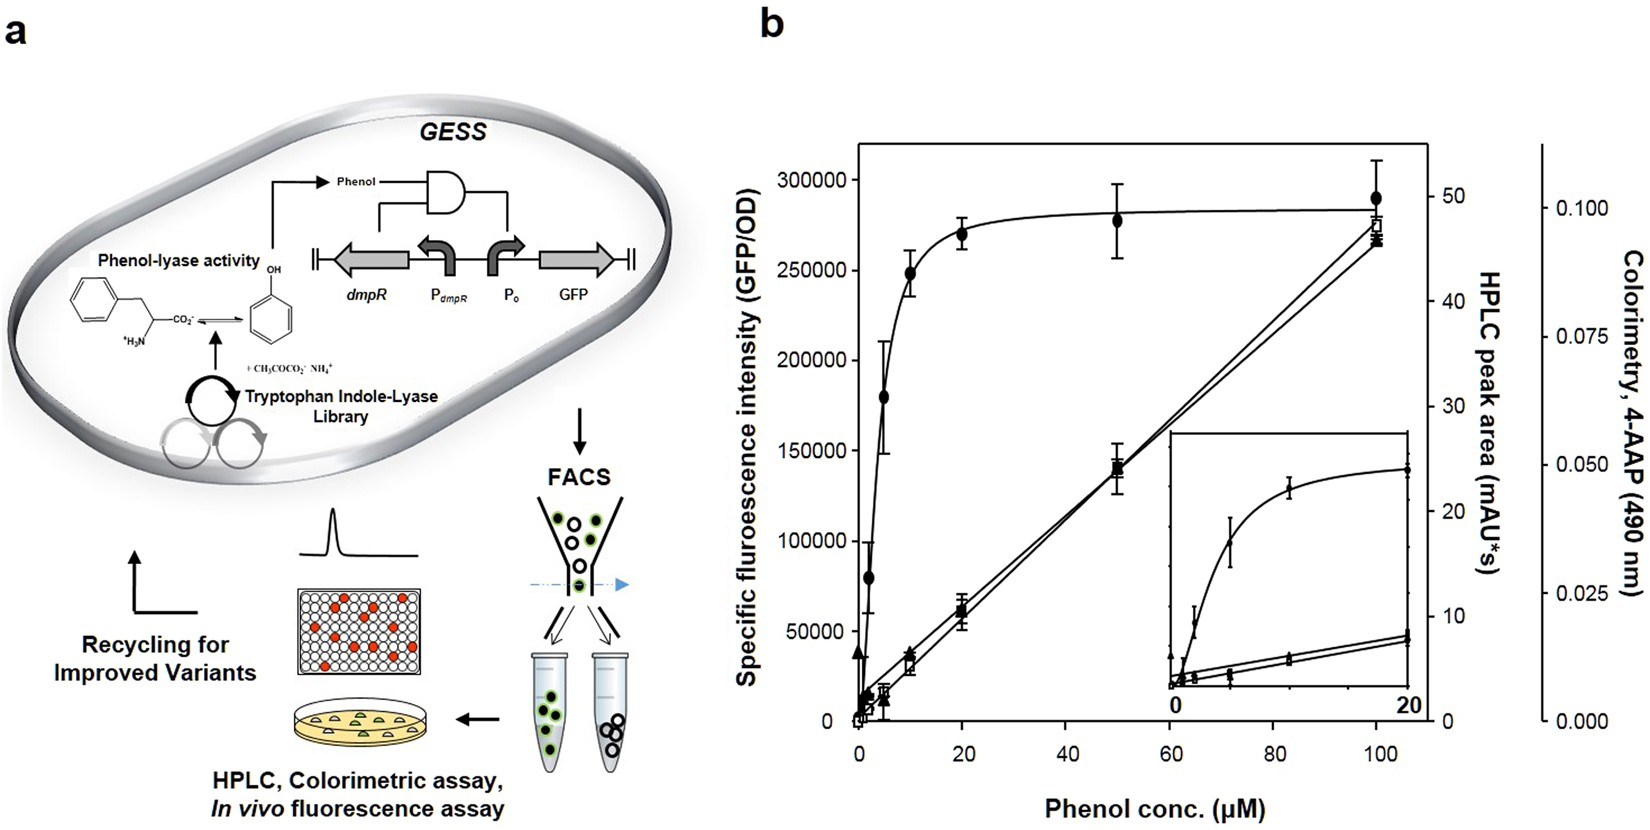 Evolution Of Enzymes With New Specificity By High Throughput Working Portable Circuit Simulation Application Proteus 8 Professional Screening Using Dmpr Based Genetic Circuits And Multiple Flow Cytometry Rounds Scientific